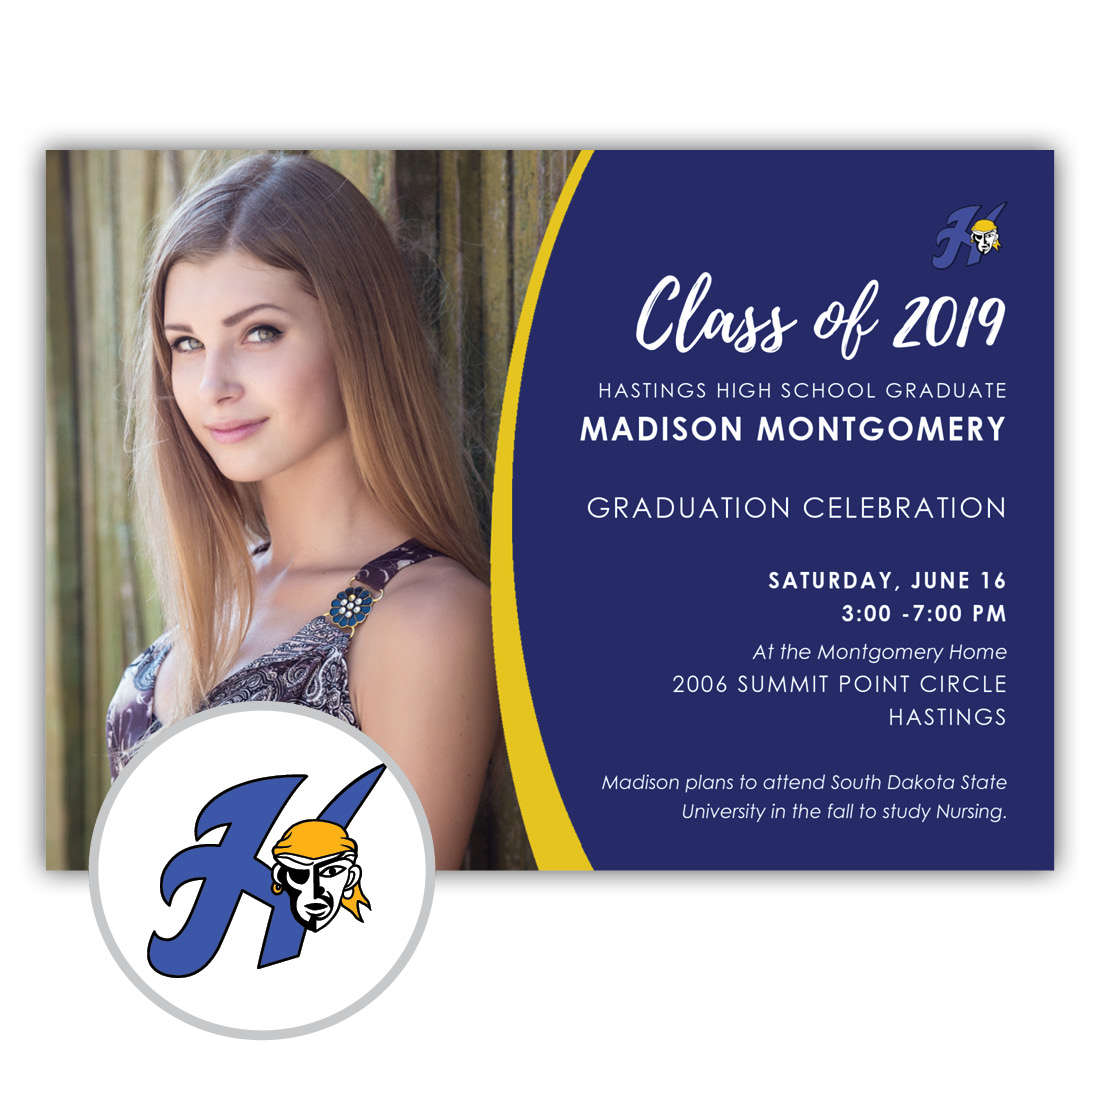 School Spirit, Hastings High School - Focus in Pix Graduation Party Invitation or Announcement